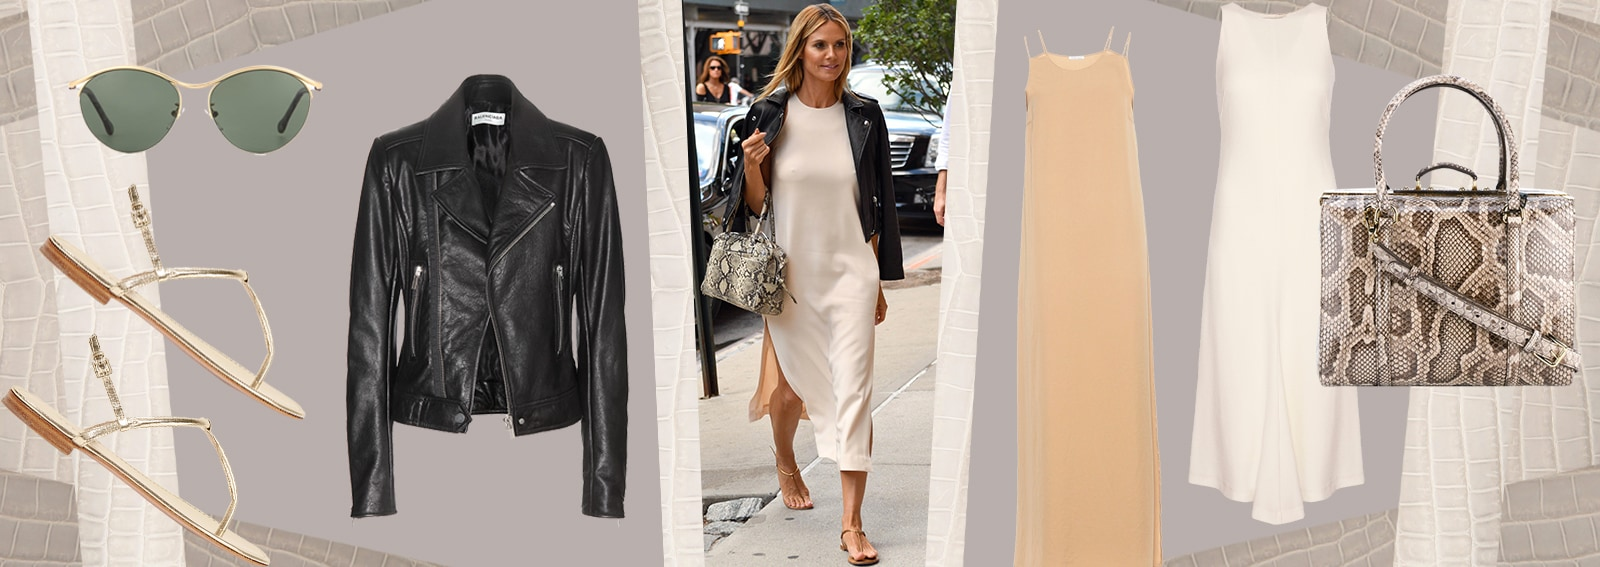 cover heidi klum in biker jacket e longdress dekstop